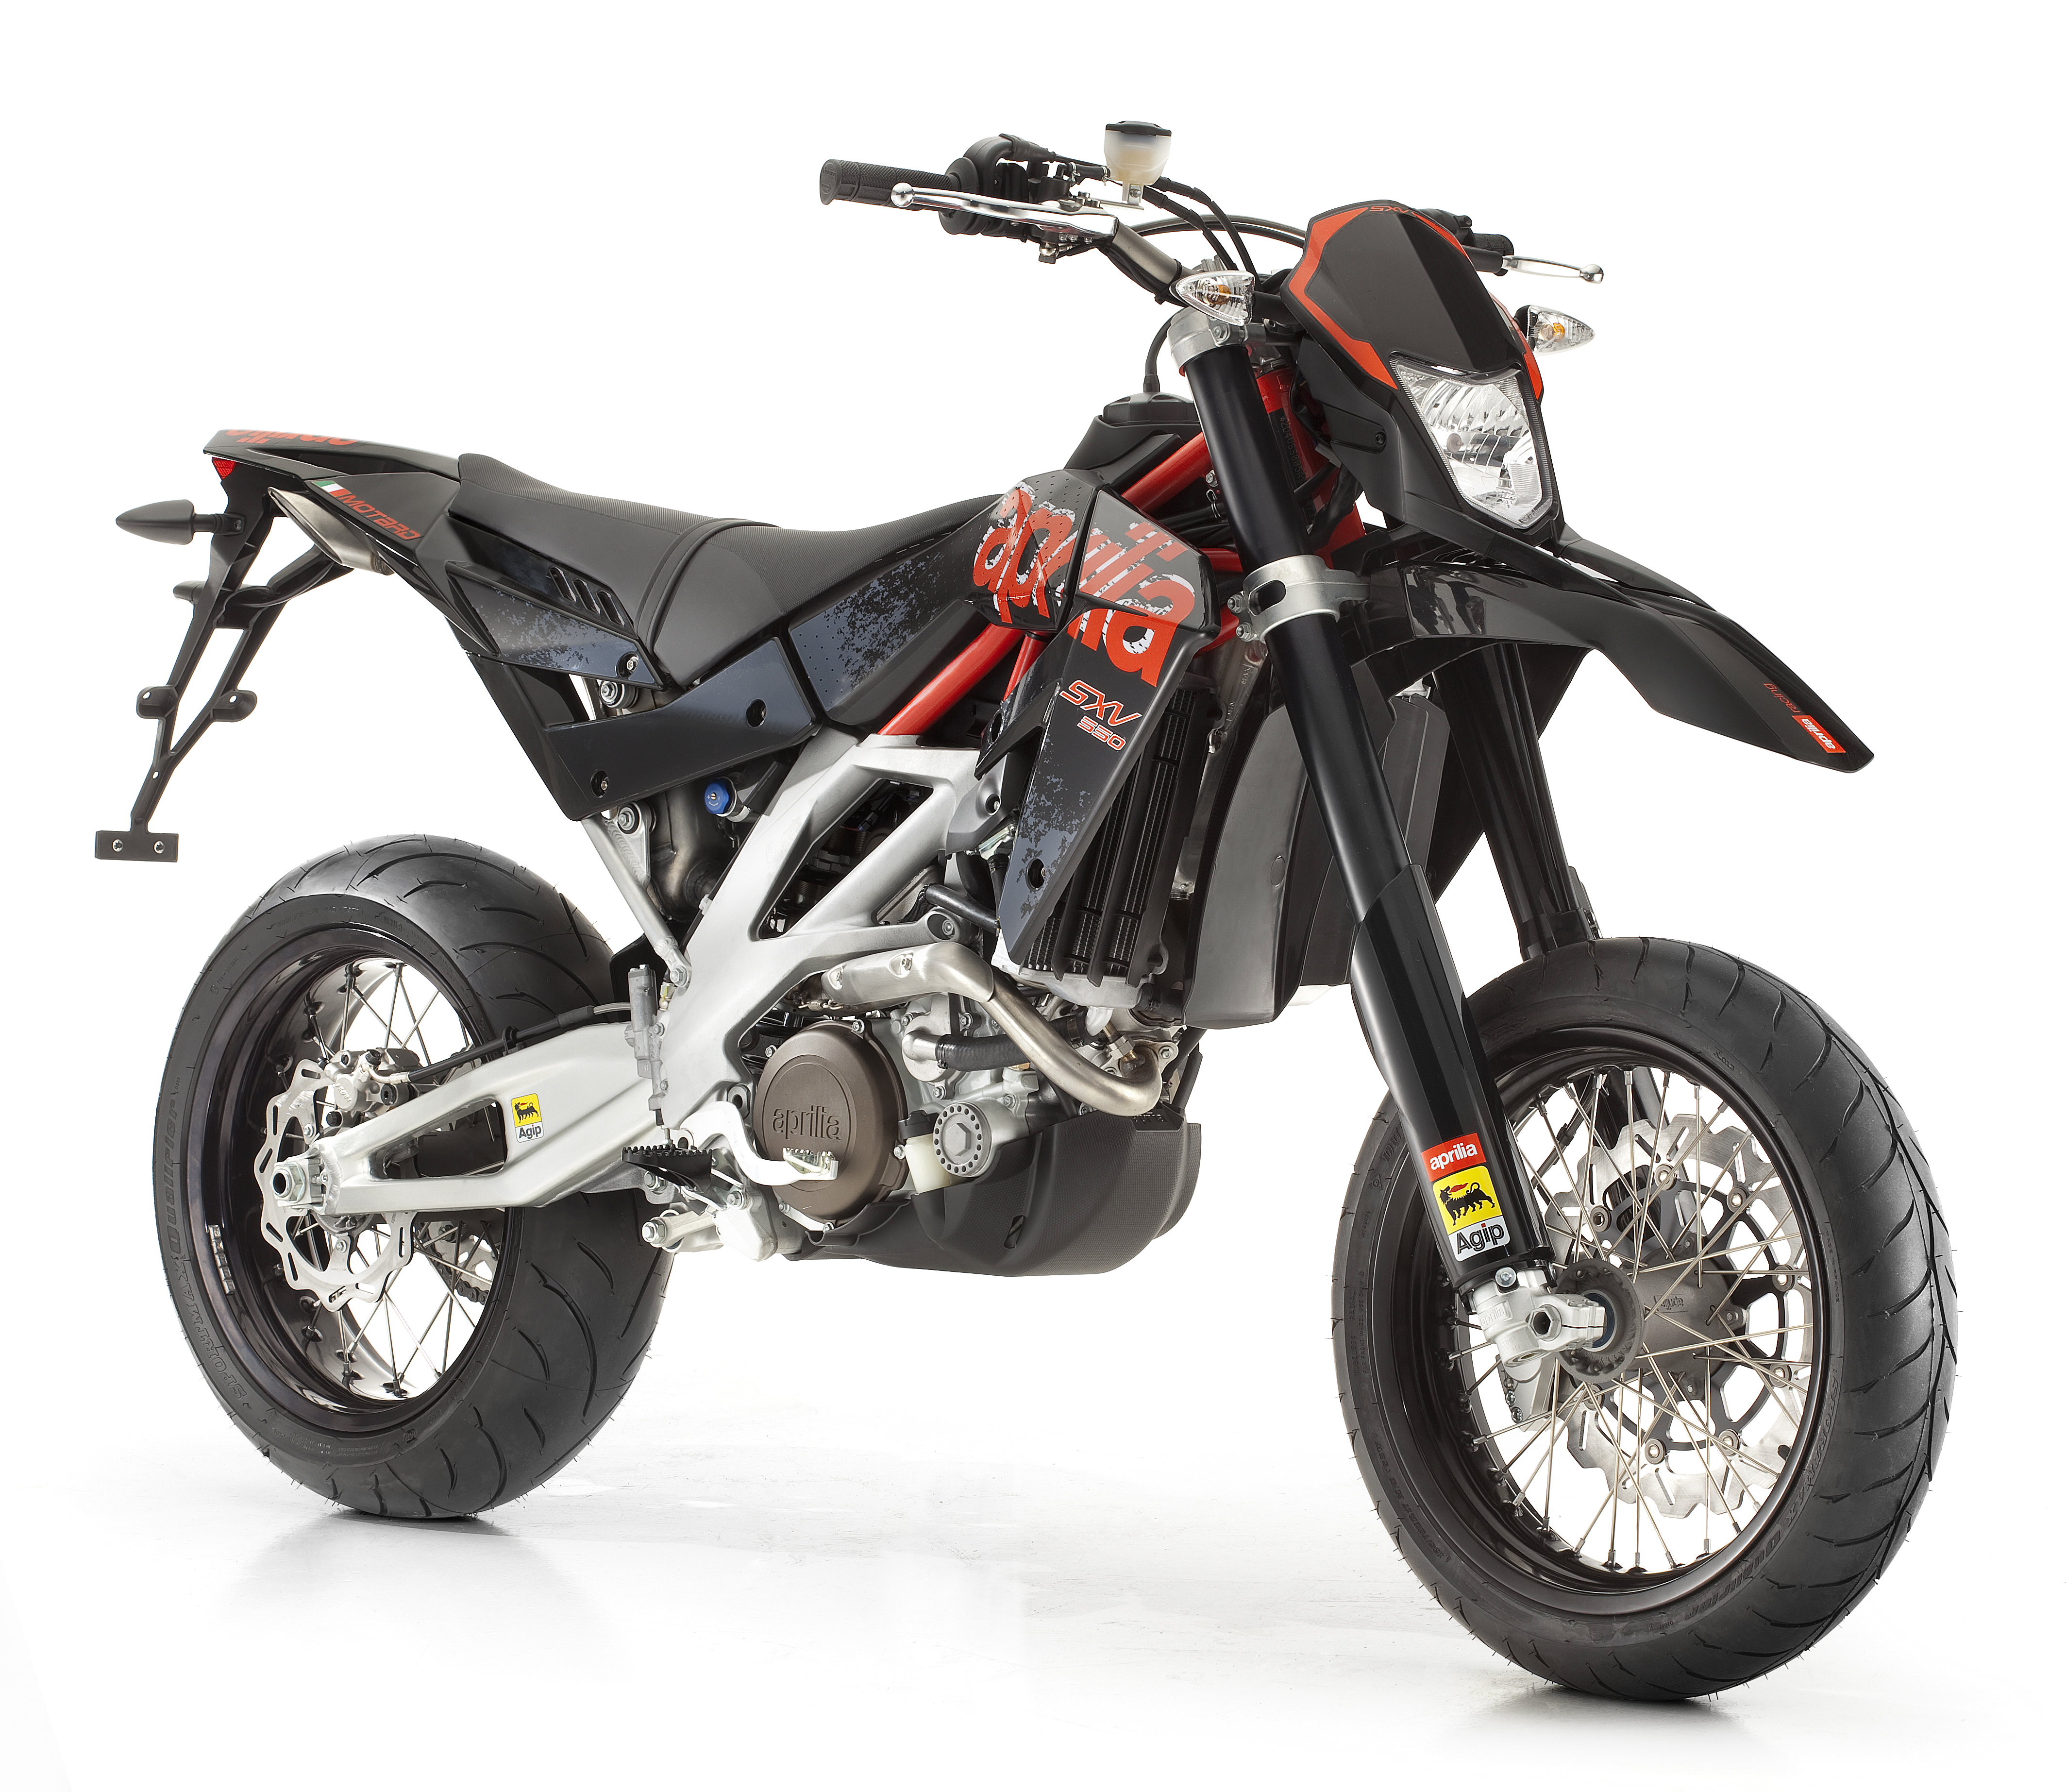 aprilia sxv 550 supermoto bilder und technische daten. Black Bedroom Furniture Sets. Home Design Ideas